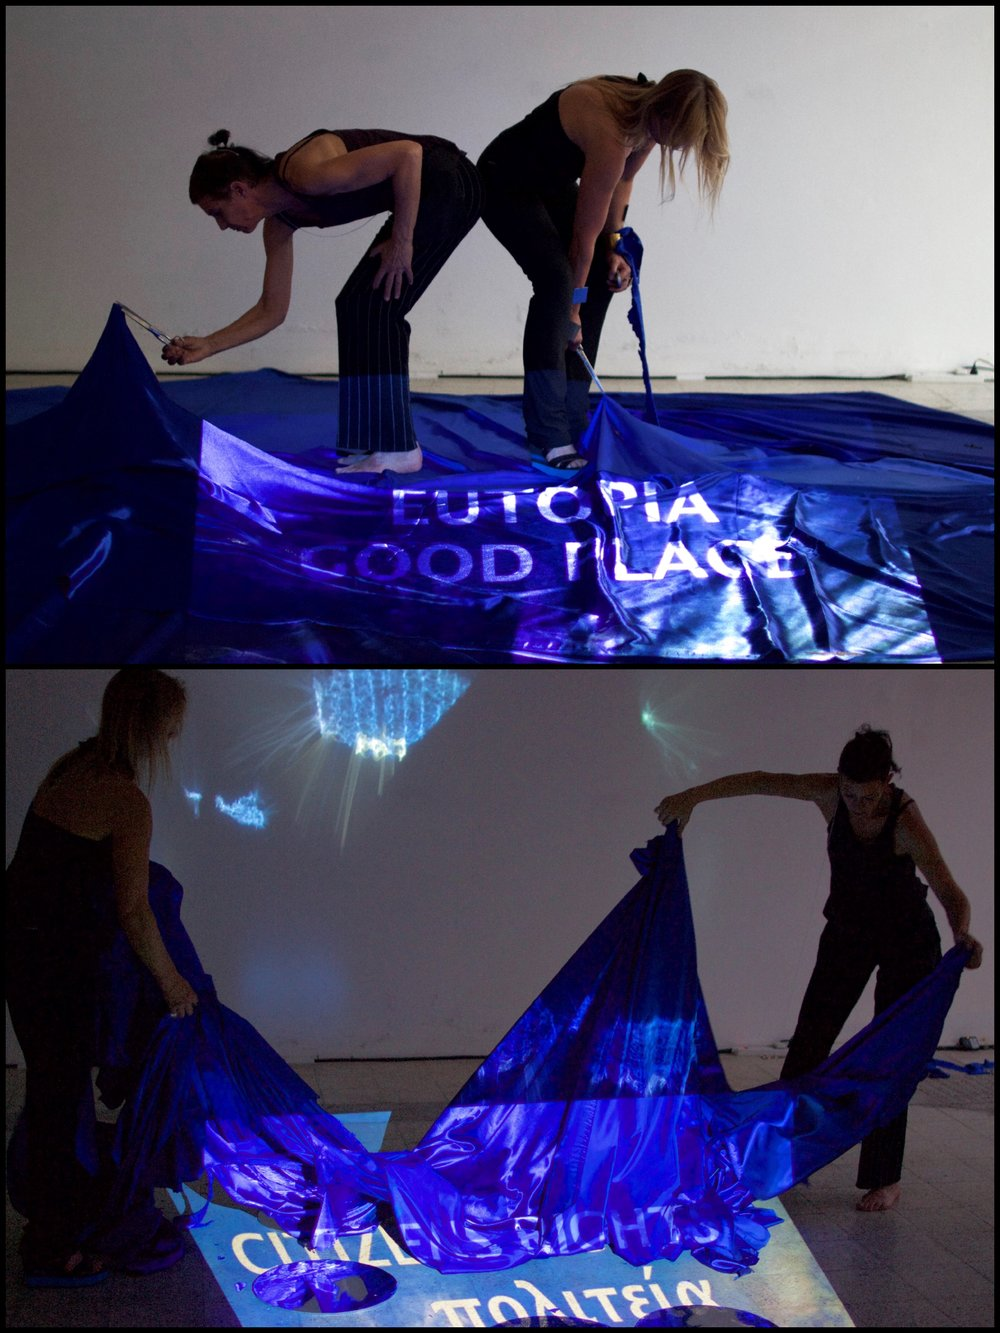 Jungeblut and Glausnitzer-Smith, Live Performance Collaboration -  eurystopia part 1  The Elysian Fields - photographed by Kyriakos Kadis